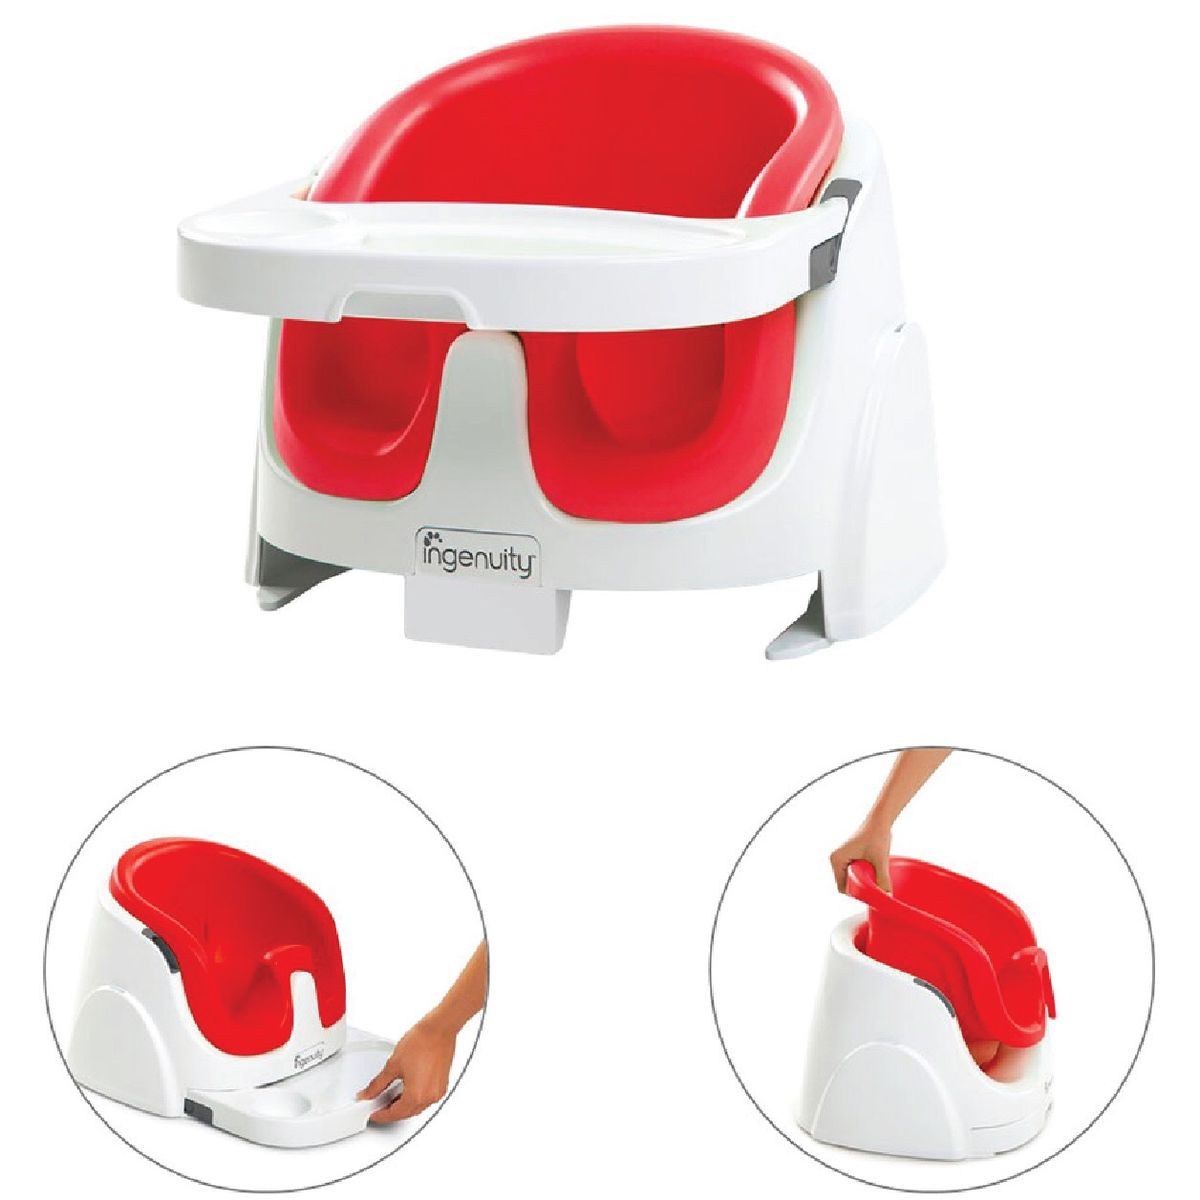 Booster & High Chair Ingenuity Baby Base 2-in-1 Booster Seat – Poppy Red